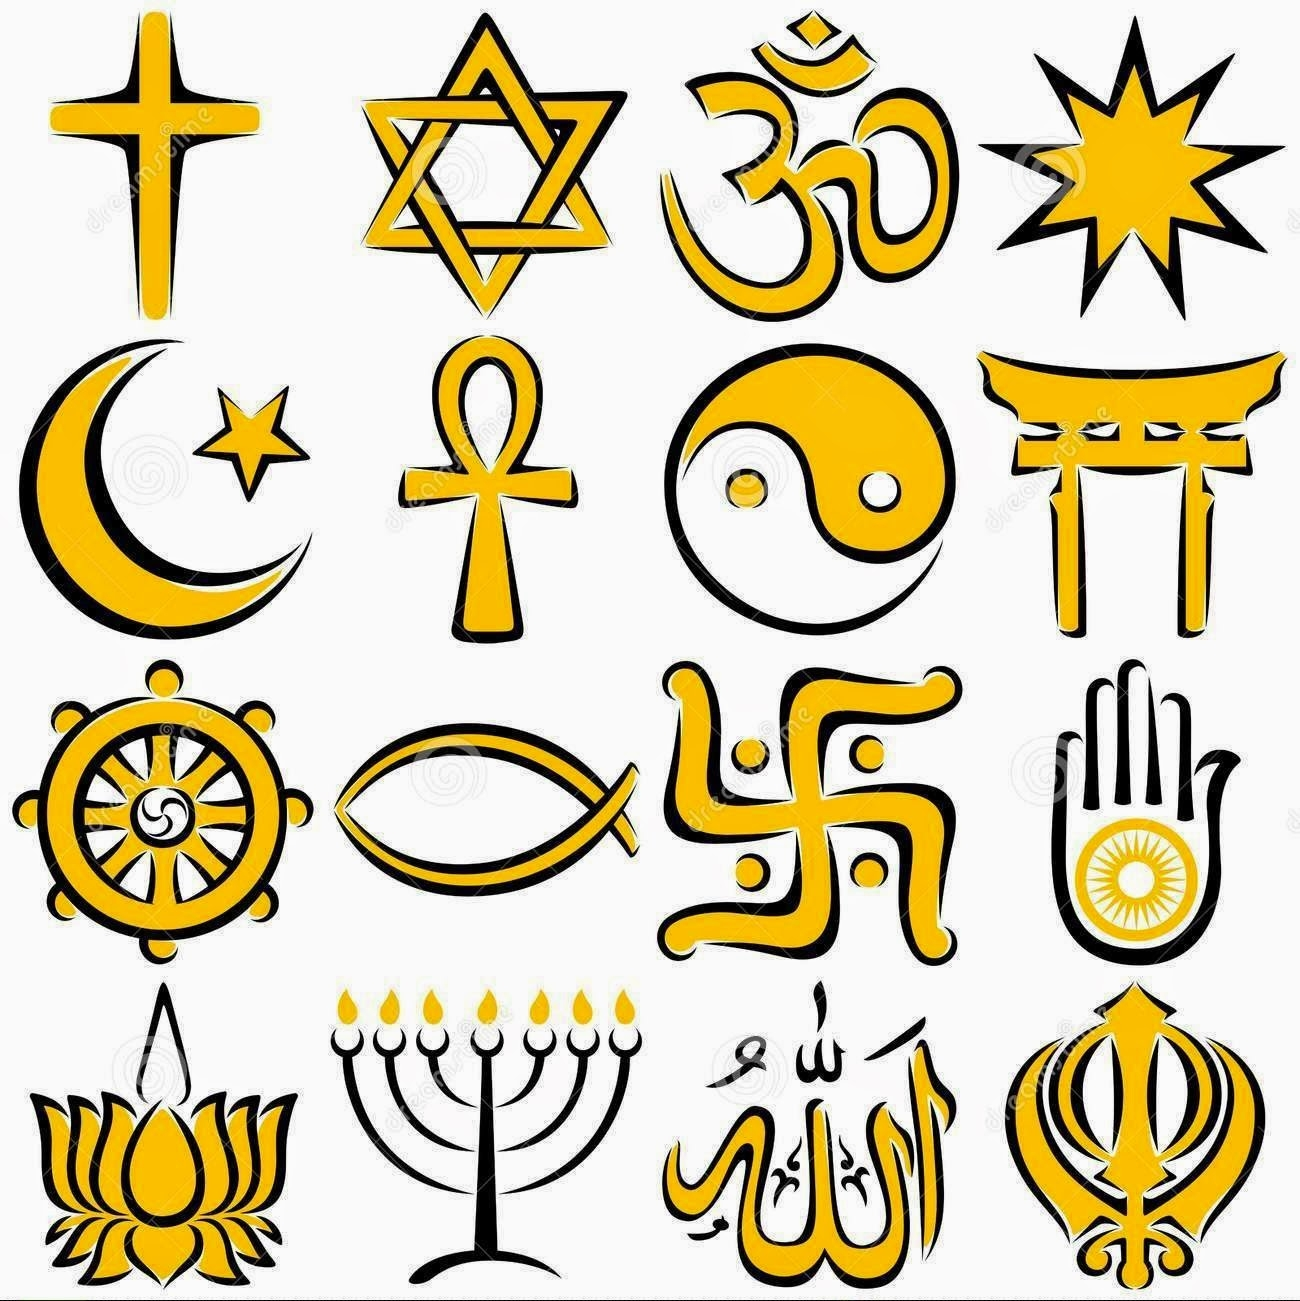 Freedom Of Religion Clipart-Freedom Of Religion Clipart-11